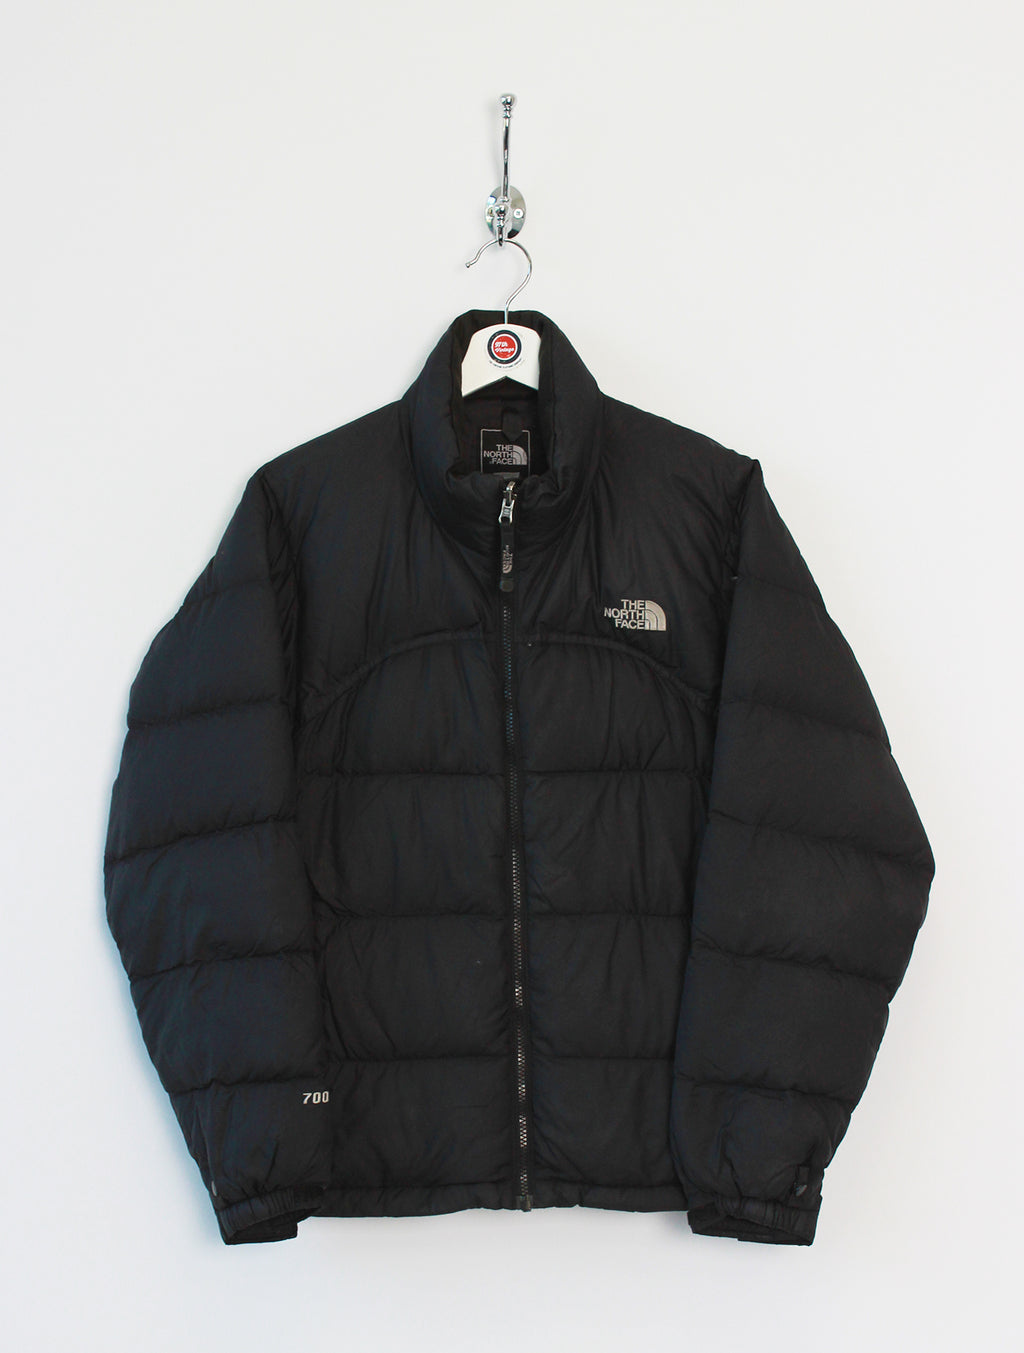 The North Face Nuptse 700 Puffer Coat (M)